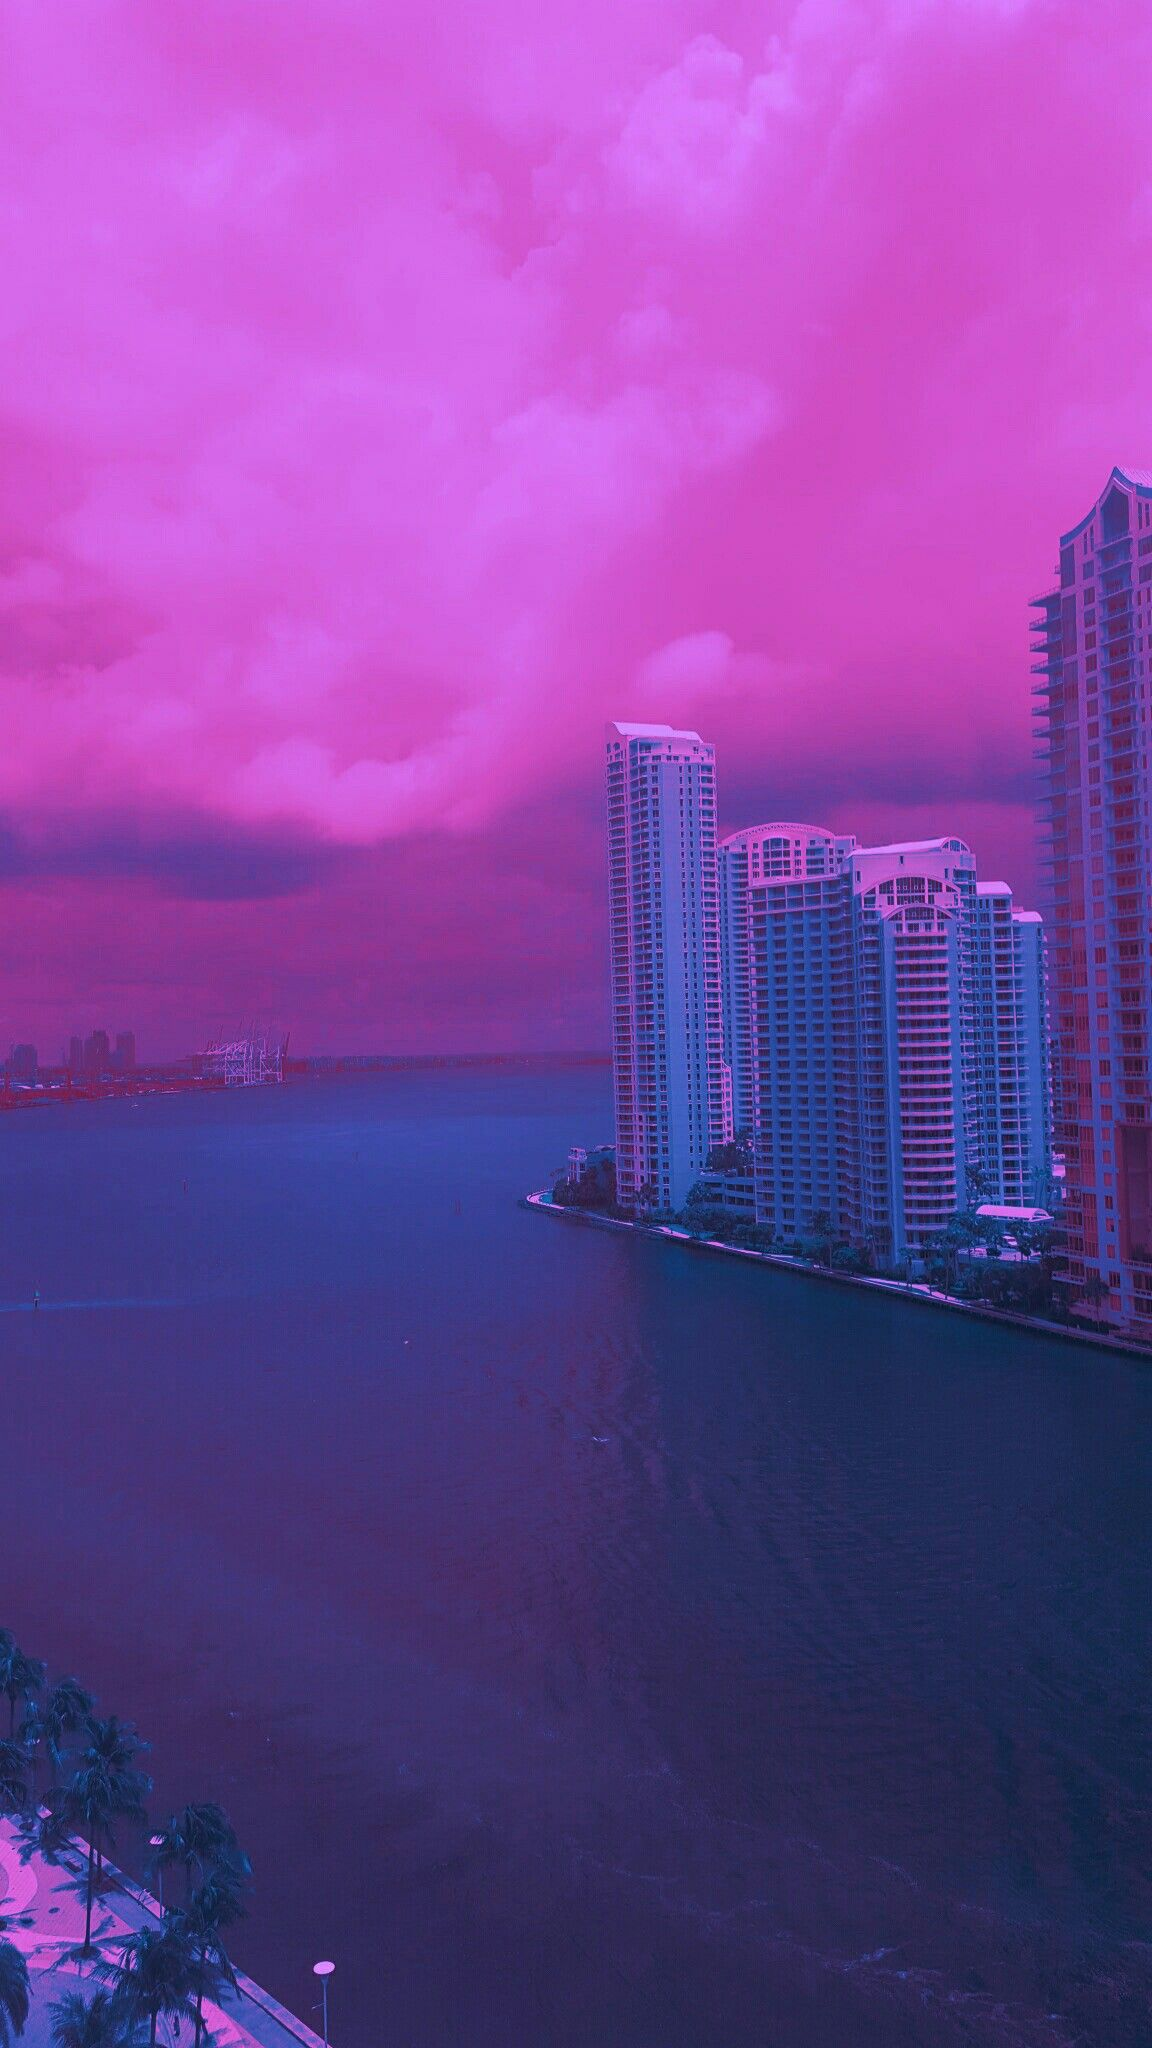 Pin By Scorchtitan On Aesthetics City Aesthetic Aesthetic Colors